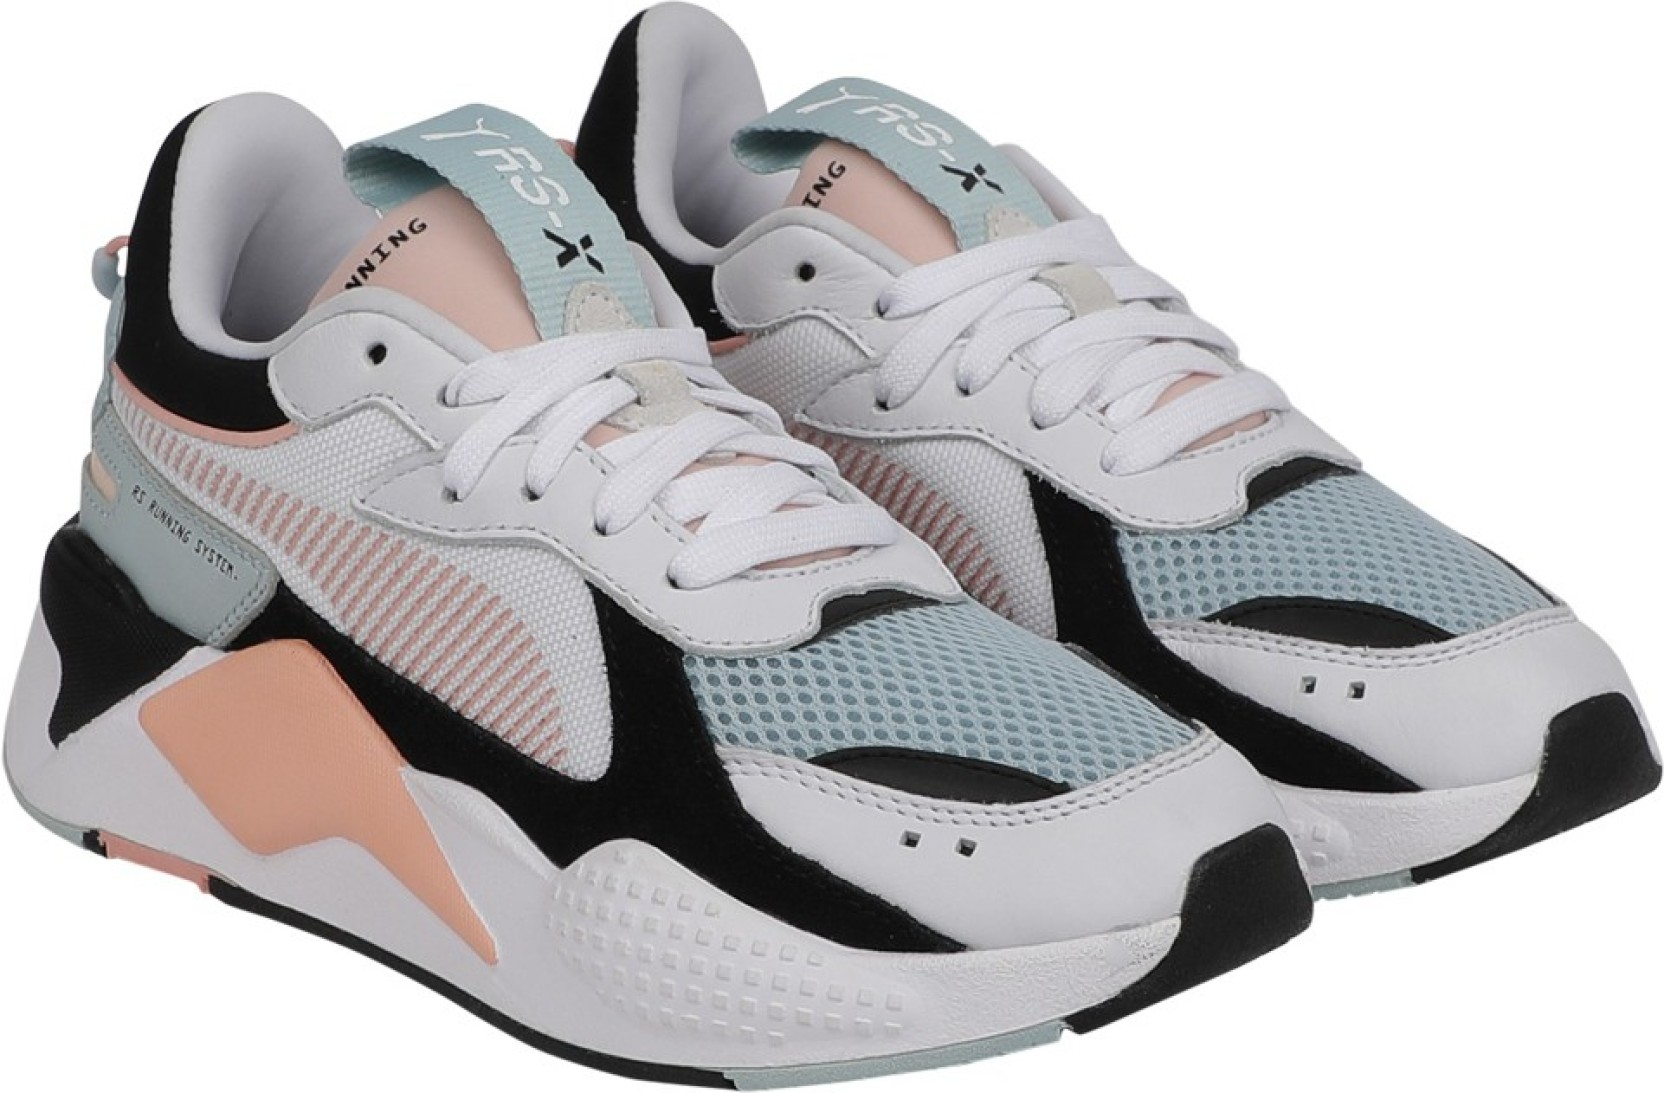 Puma RS X Reinvention Running Shoes For Men Buy Puma RS X